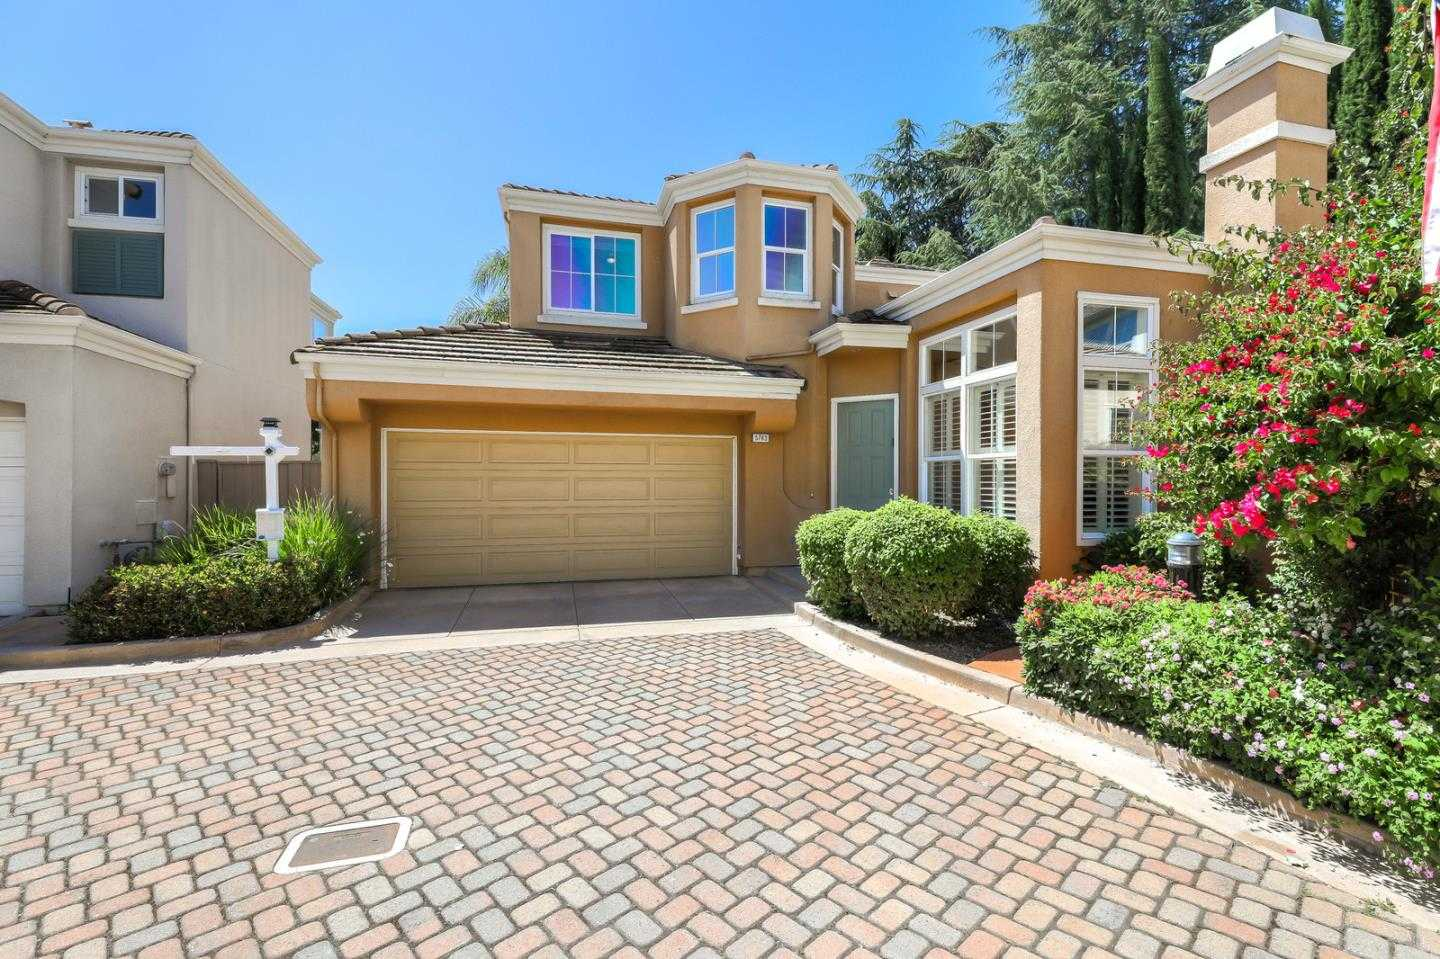 $1,488,000 - 4Br/3Ba -  for Sale in San Jose